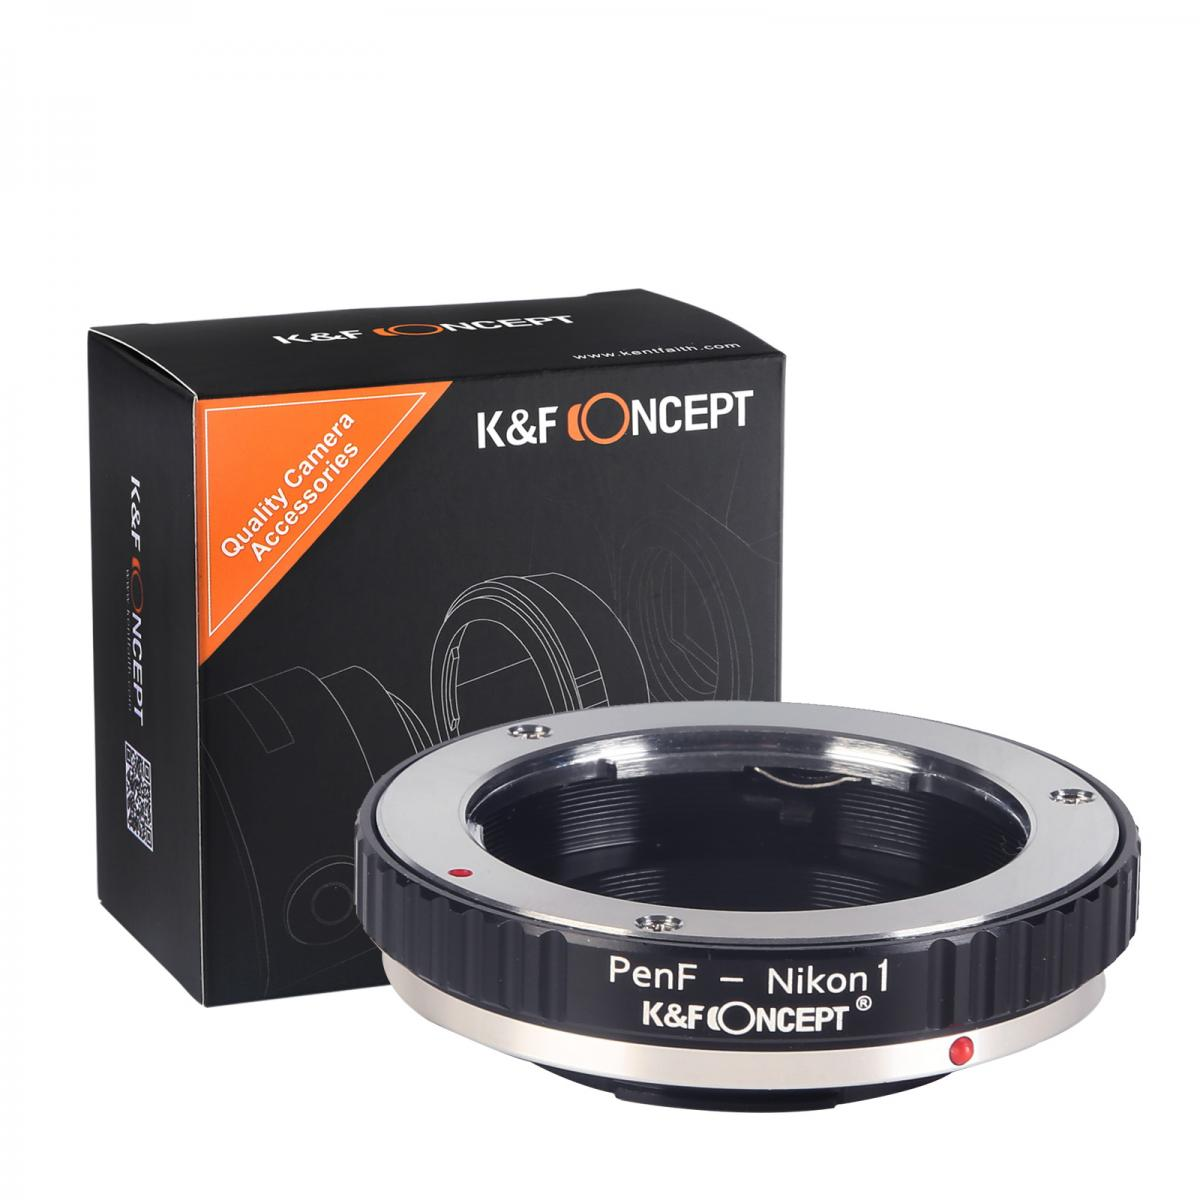 K&F M43201 Olympus Pen-F Lenses to Nikon 1 Lens Mount Adapter